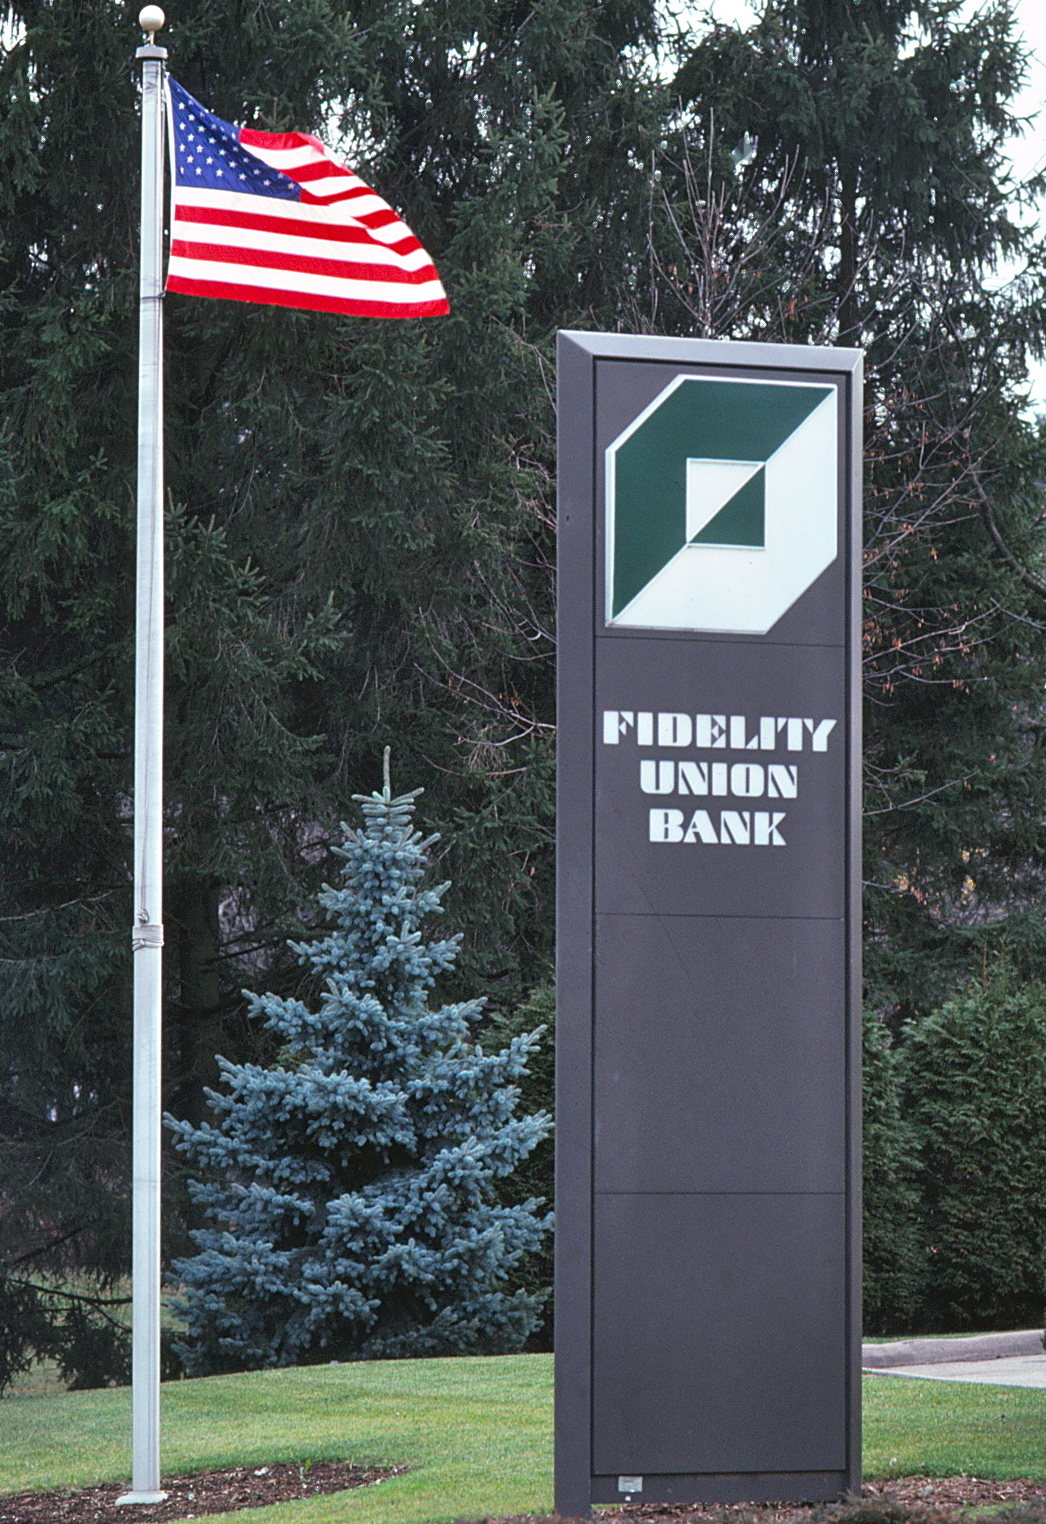 Outdoor photo of a tall pylon with Fidelity logo and typeface next to a fluttering US flag.